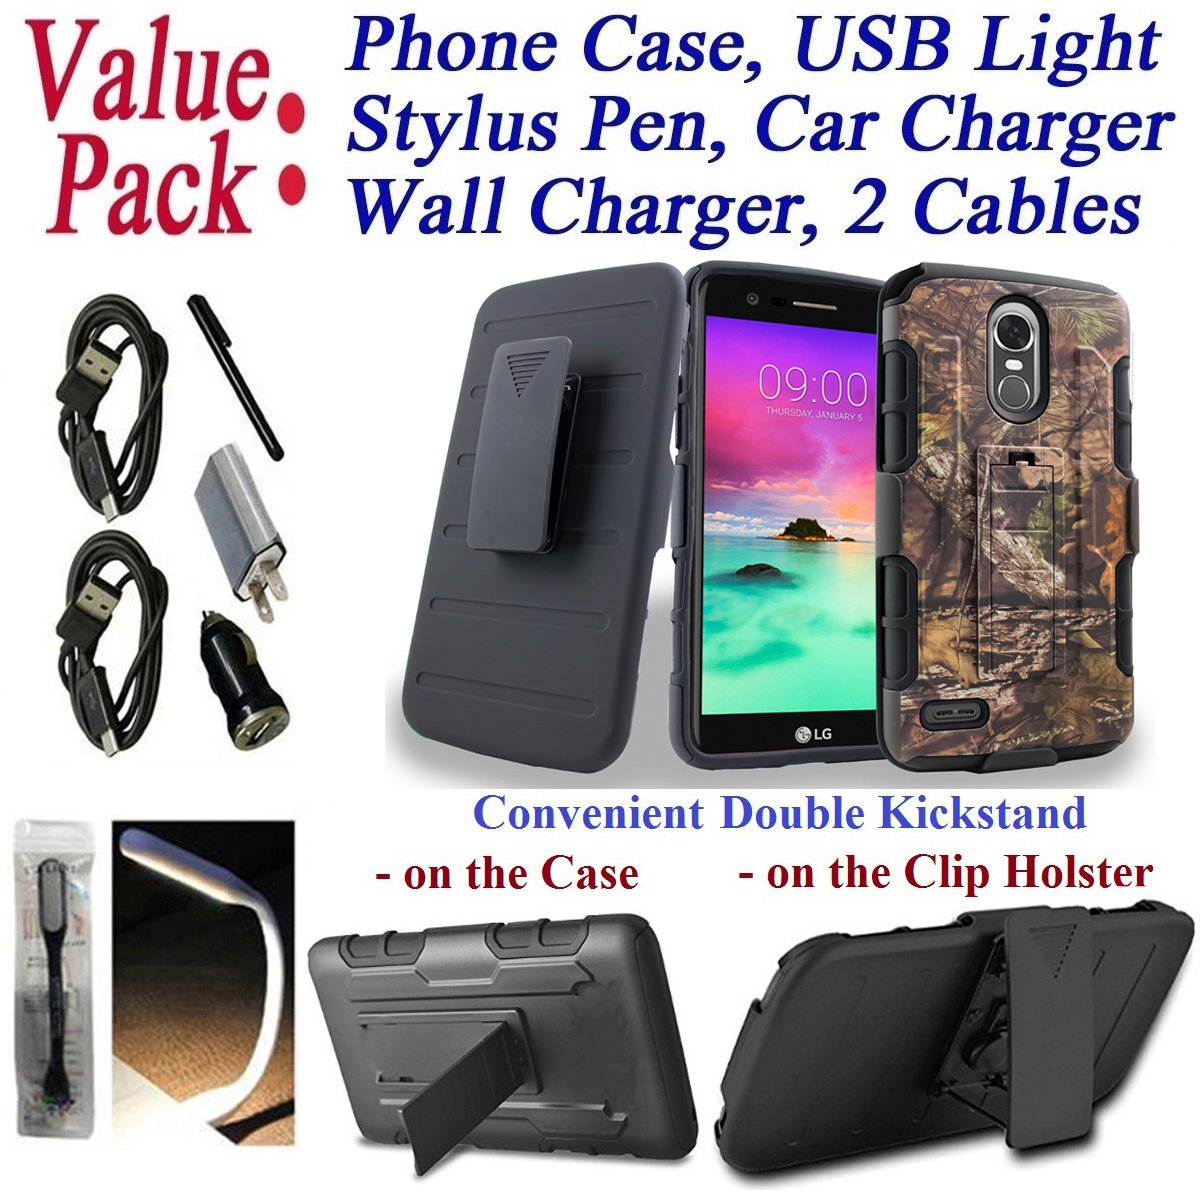 Value Pack Cables + for 5.7'' LG Stylo 3 K10 PRO Stylus 3 + PLUS Case Phone Case Belt Clip Holster 2 Kick Stands Hybrid Armor Shock Bumper Cover (Camo Stripe)